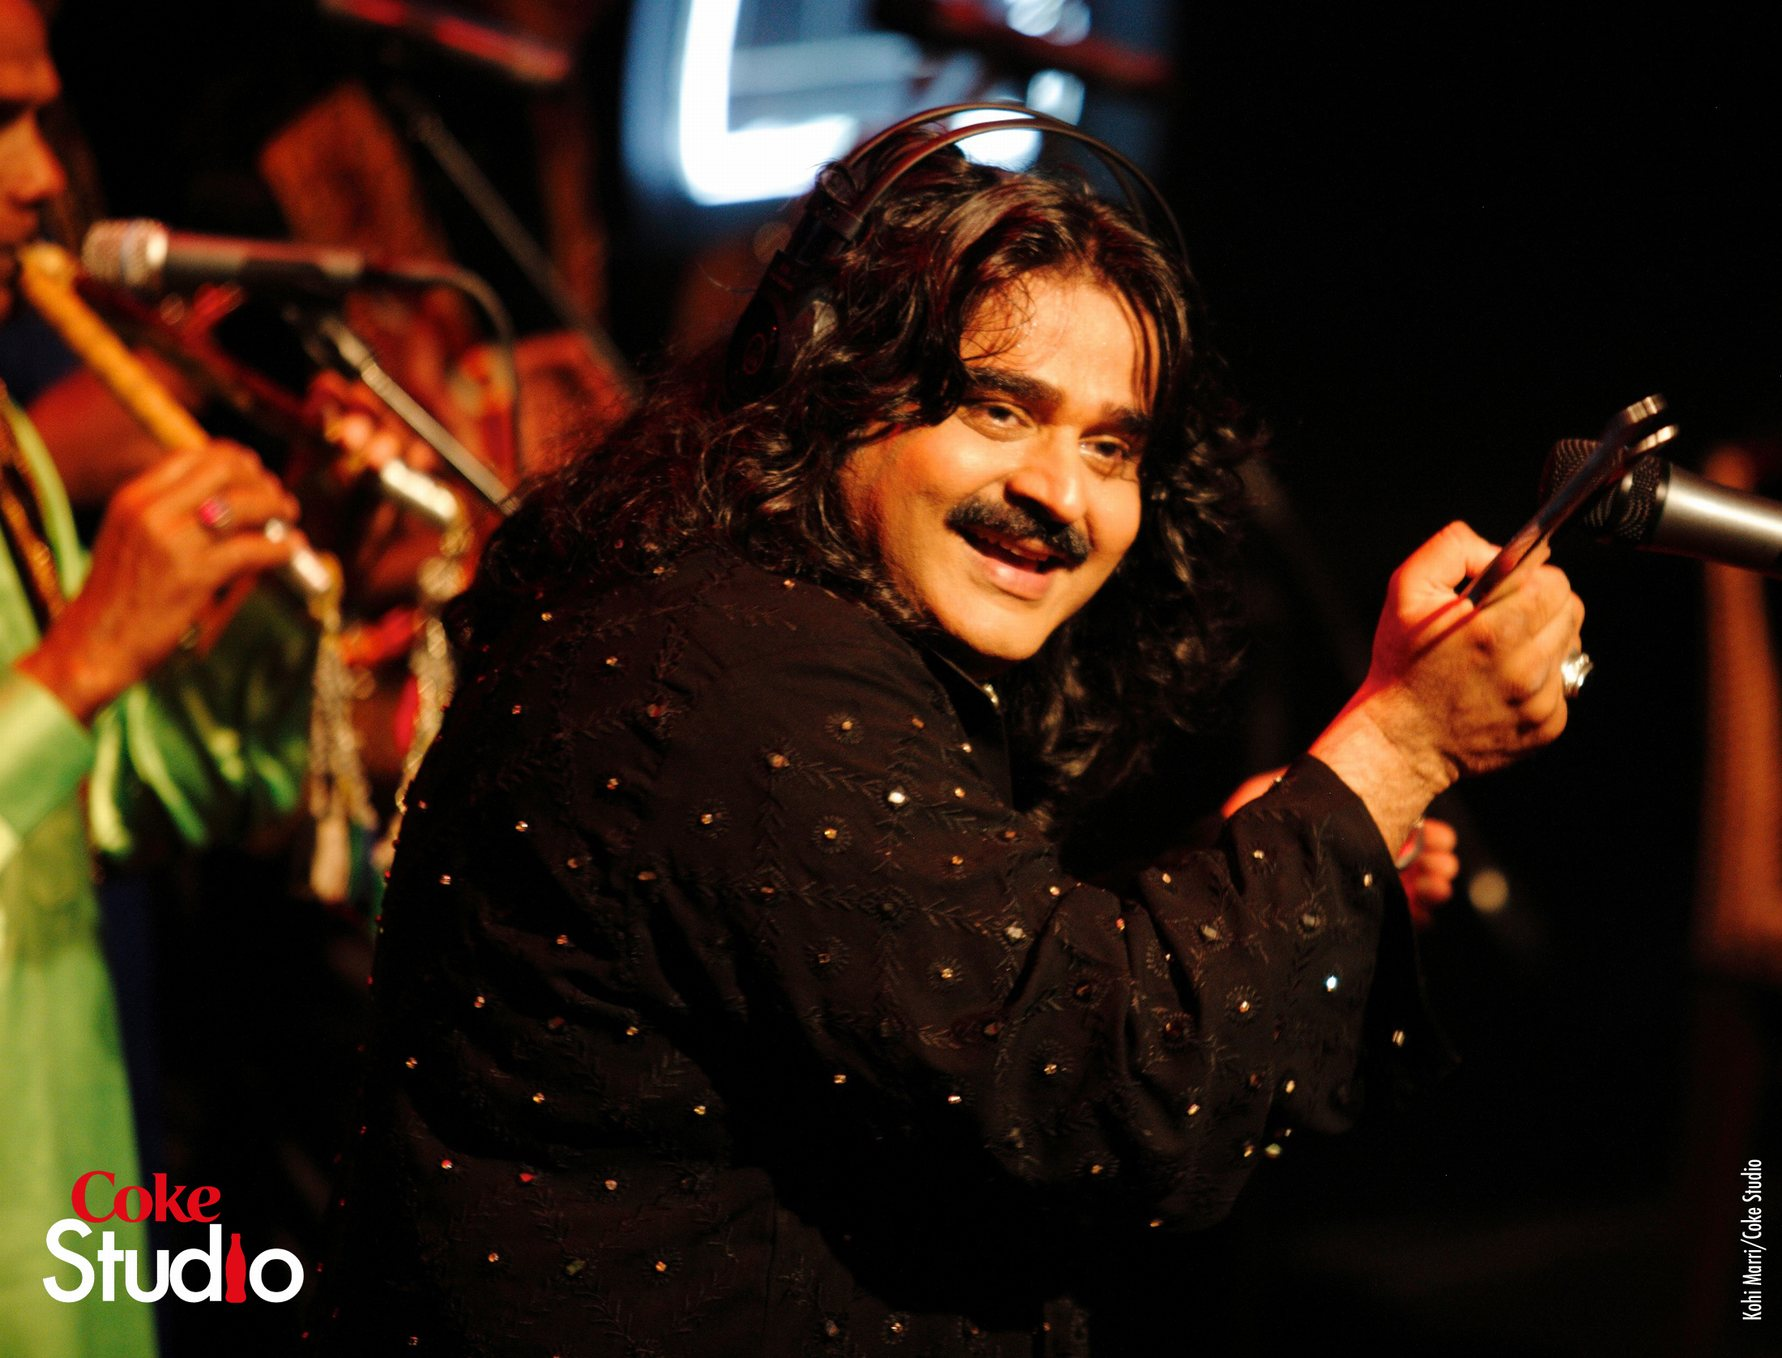 arif lohar jugni coke studio mp3 free download